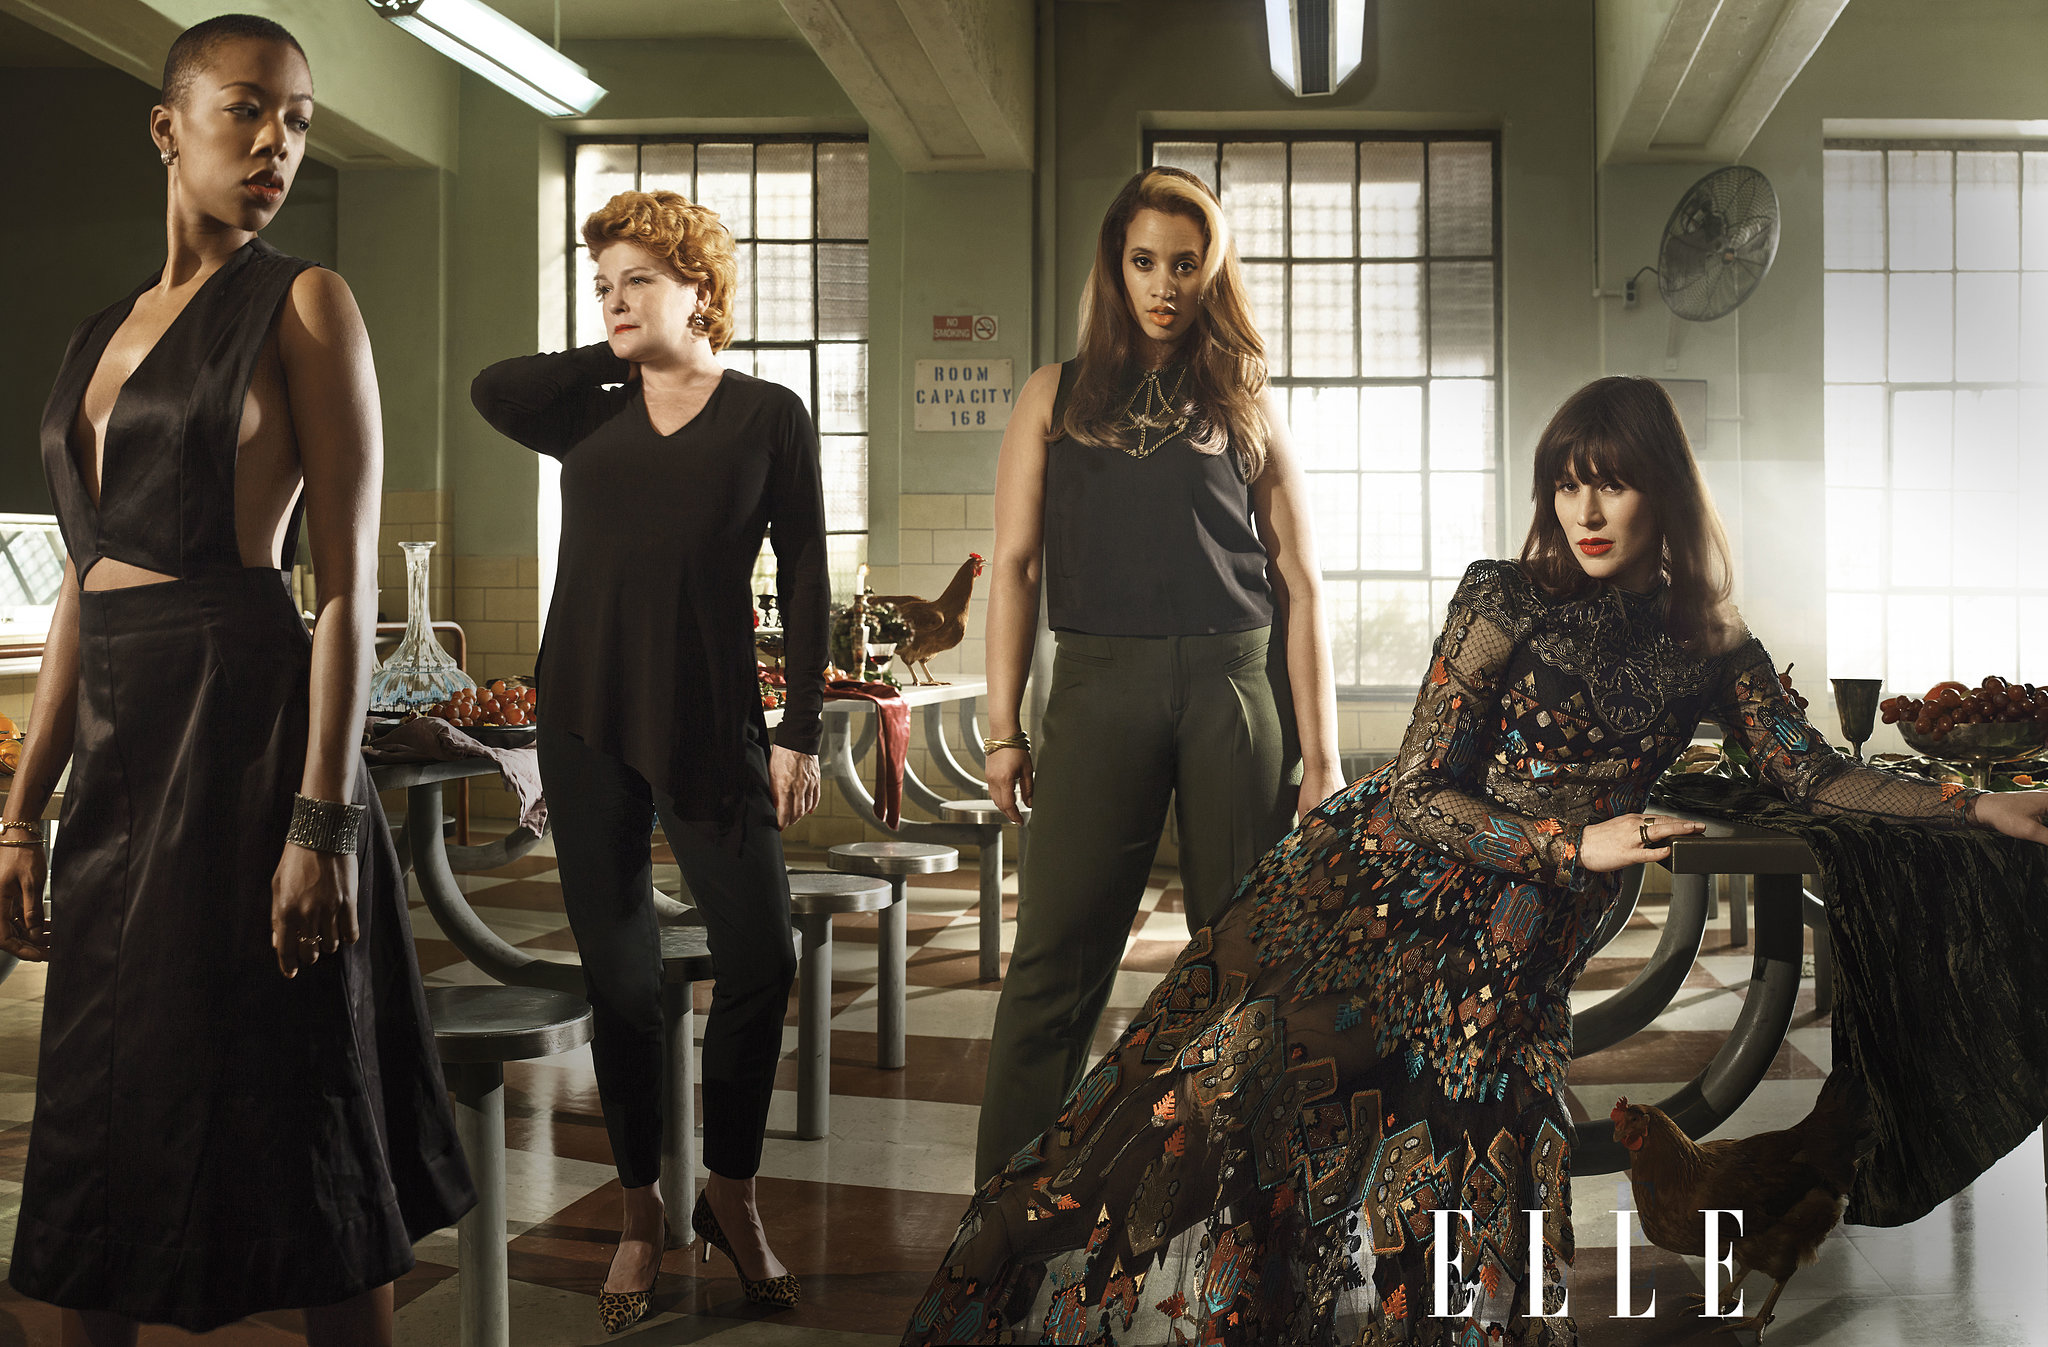 Samira Wiley (Poussey), Kate Mulgrew (Red), Dascha Polanco (Dayanara), and Yael Stone (Lorna) struck a pose in the cafeteria.  Source: Elle